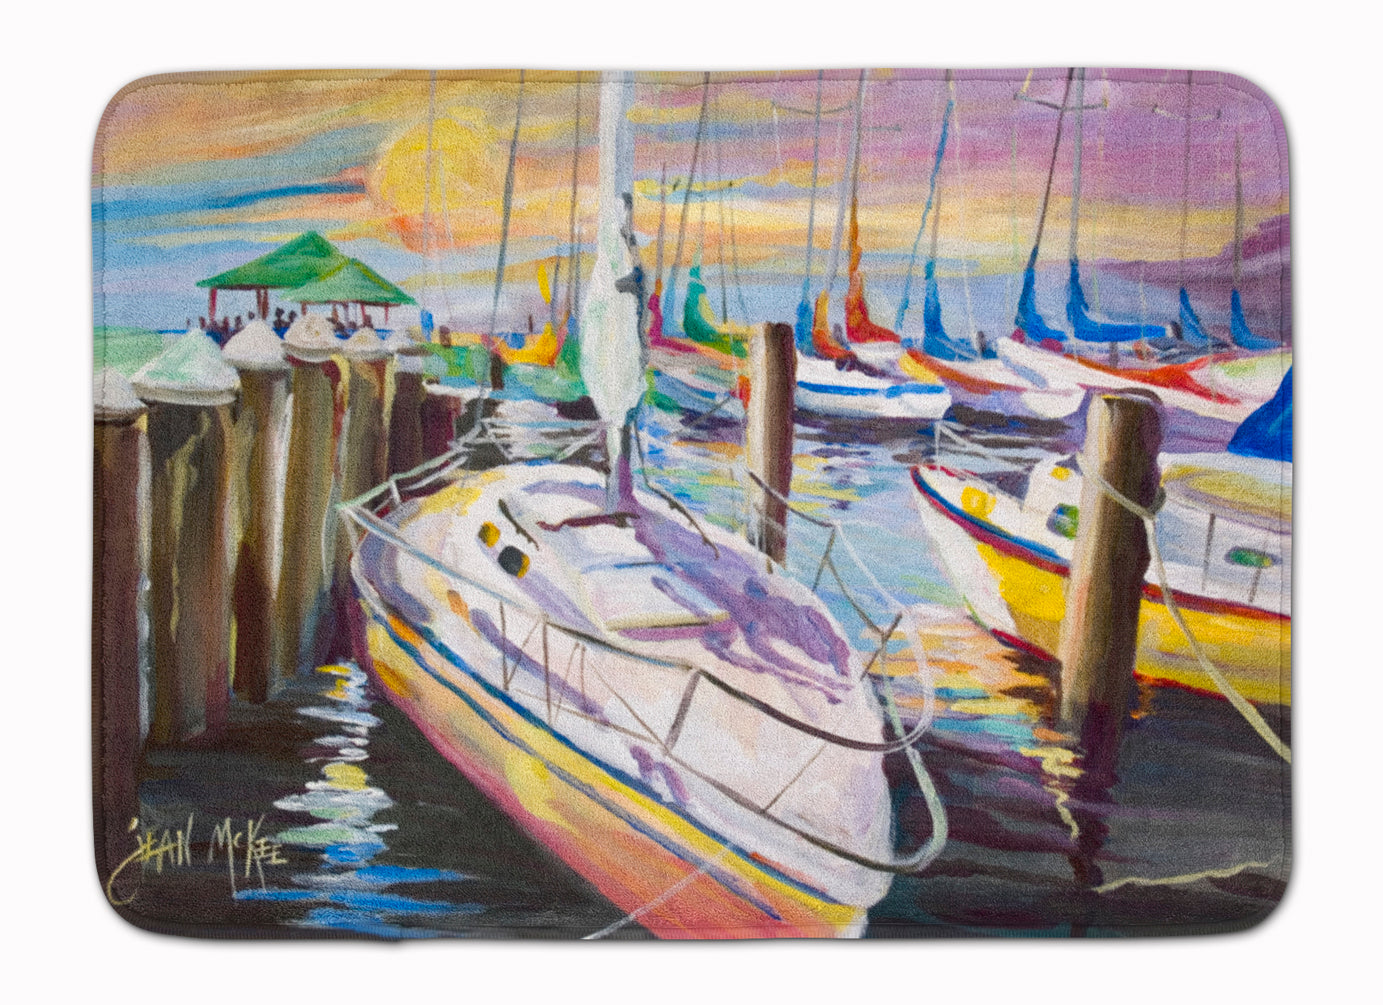 Buy this Sailboats at the Fairhope Yacht Club Docks Machine Washable Memory Foam Mat JMK1044RUG